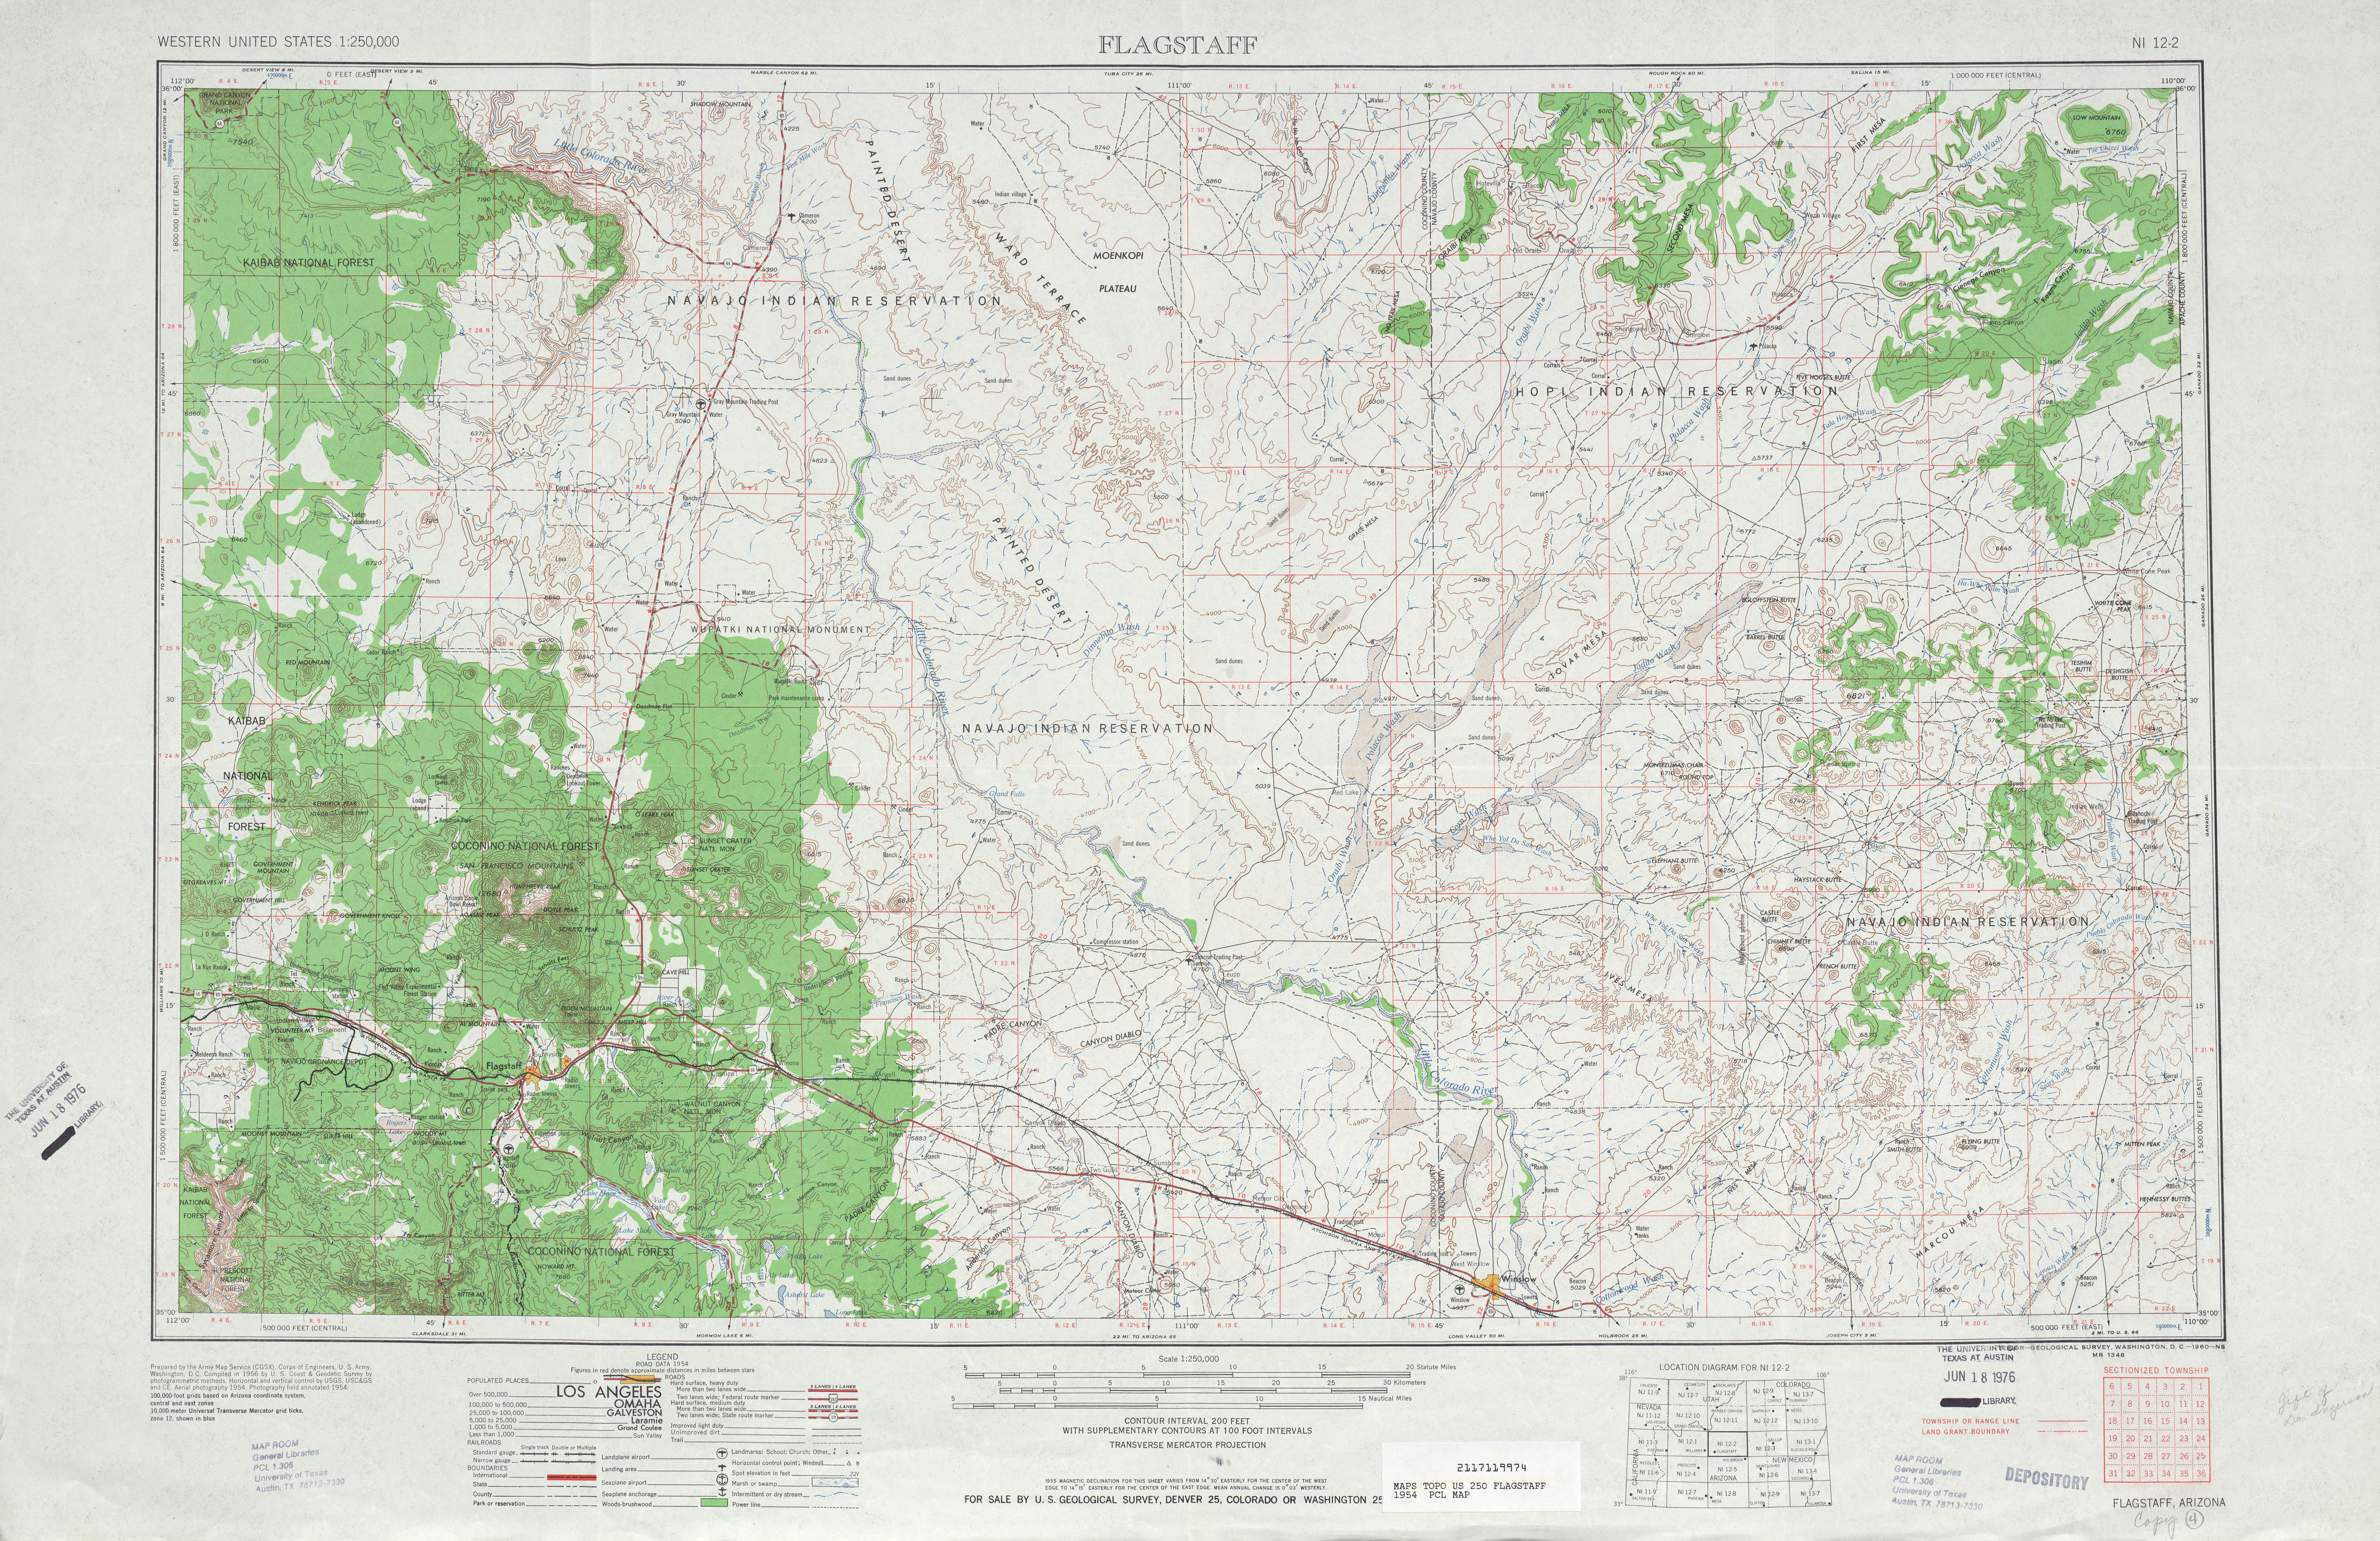 Flagstaff Topographic Map Sheet, United States 1954